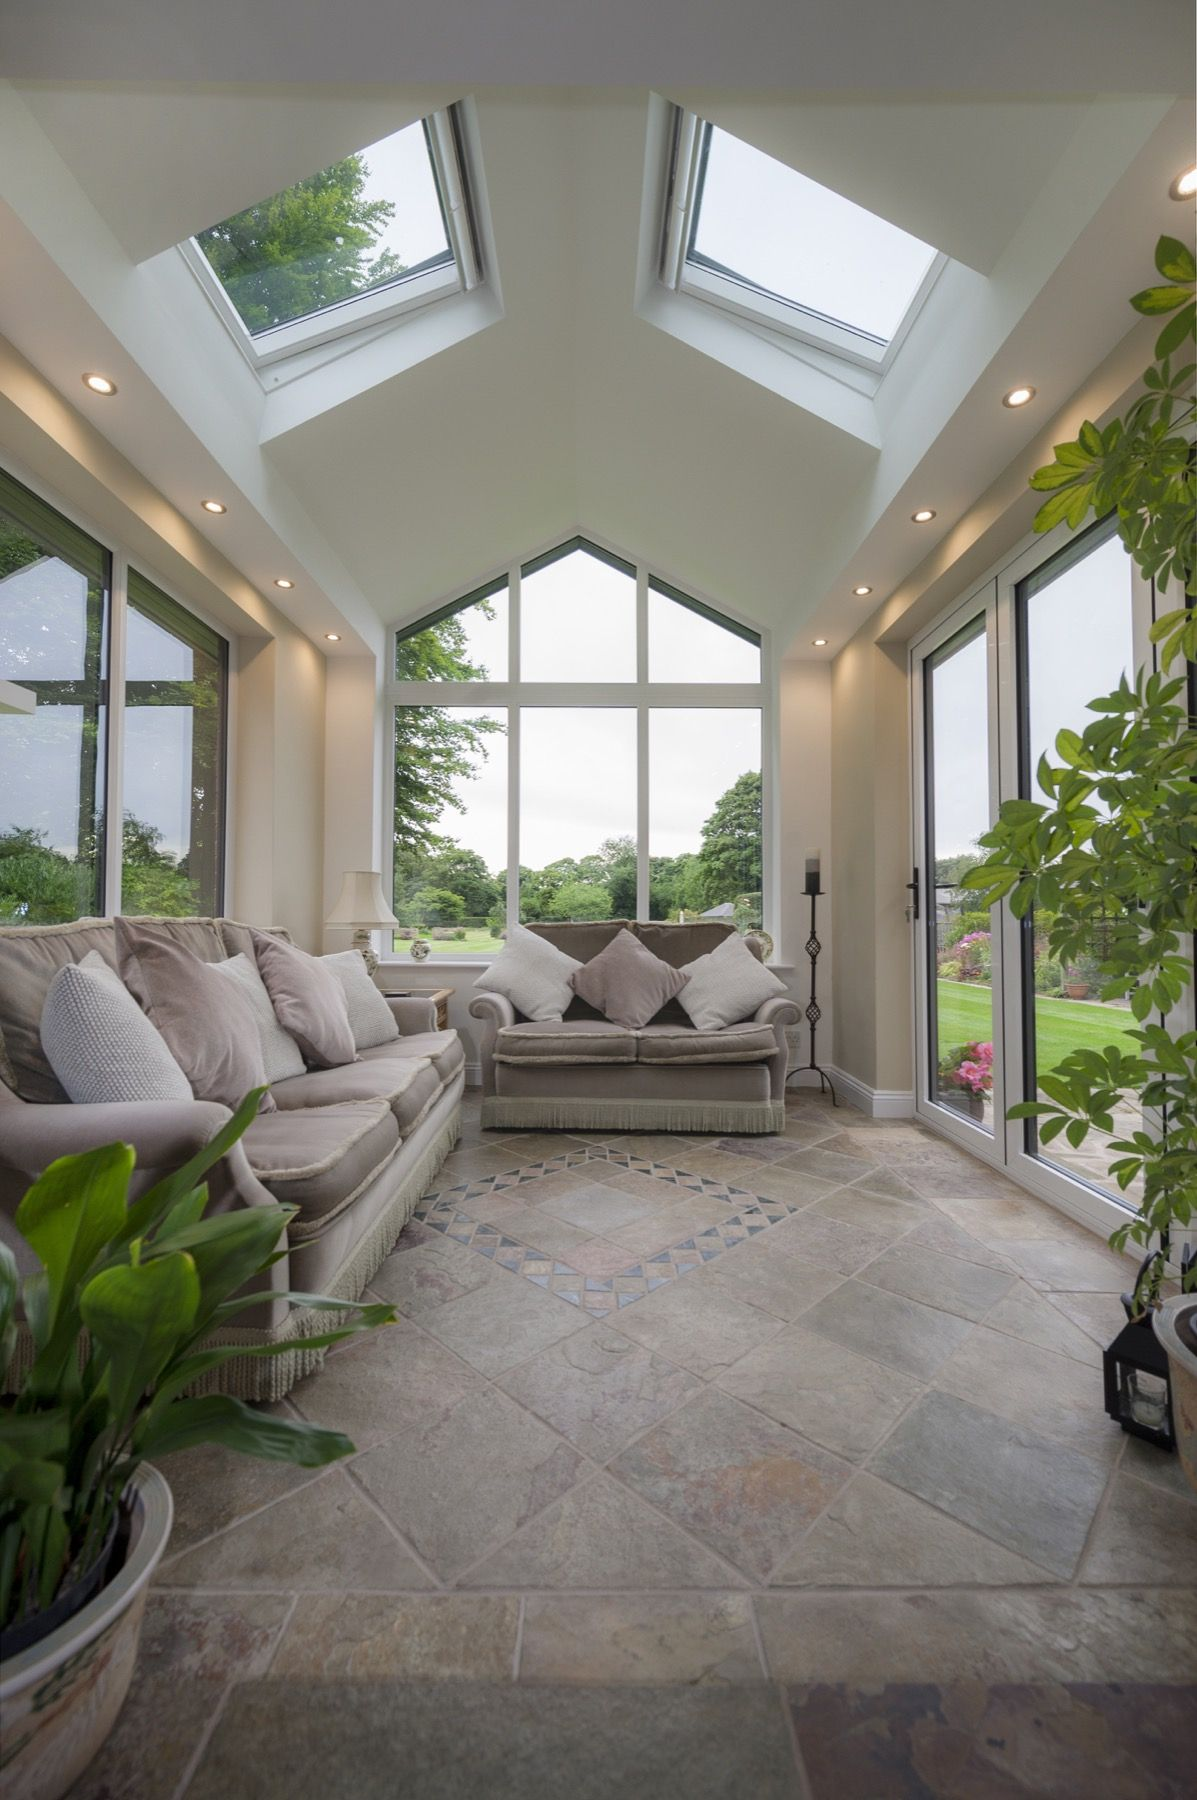 7 Stunning Home Extension Ideas: Solid Roof Extensions In Hampshire - Buy Now, Pay Later!